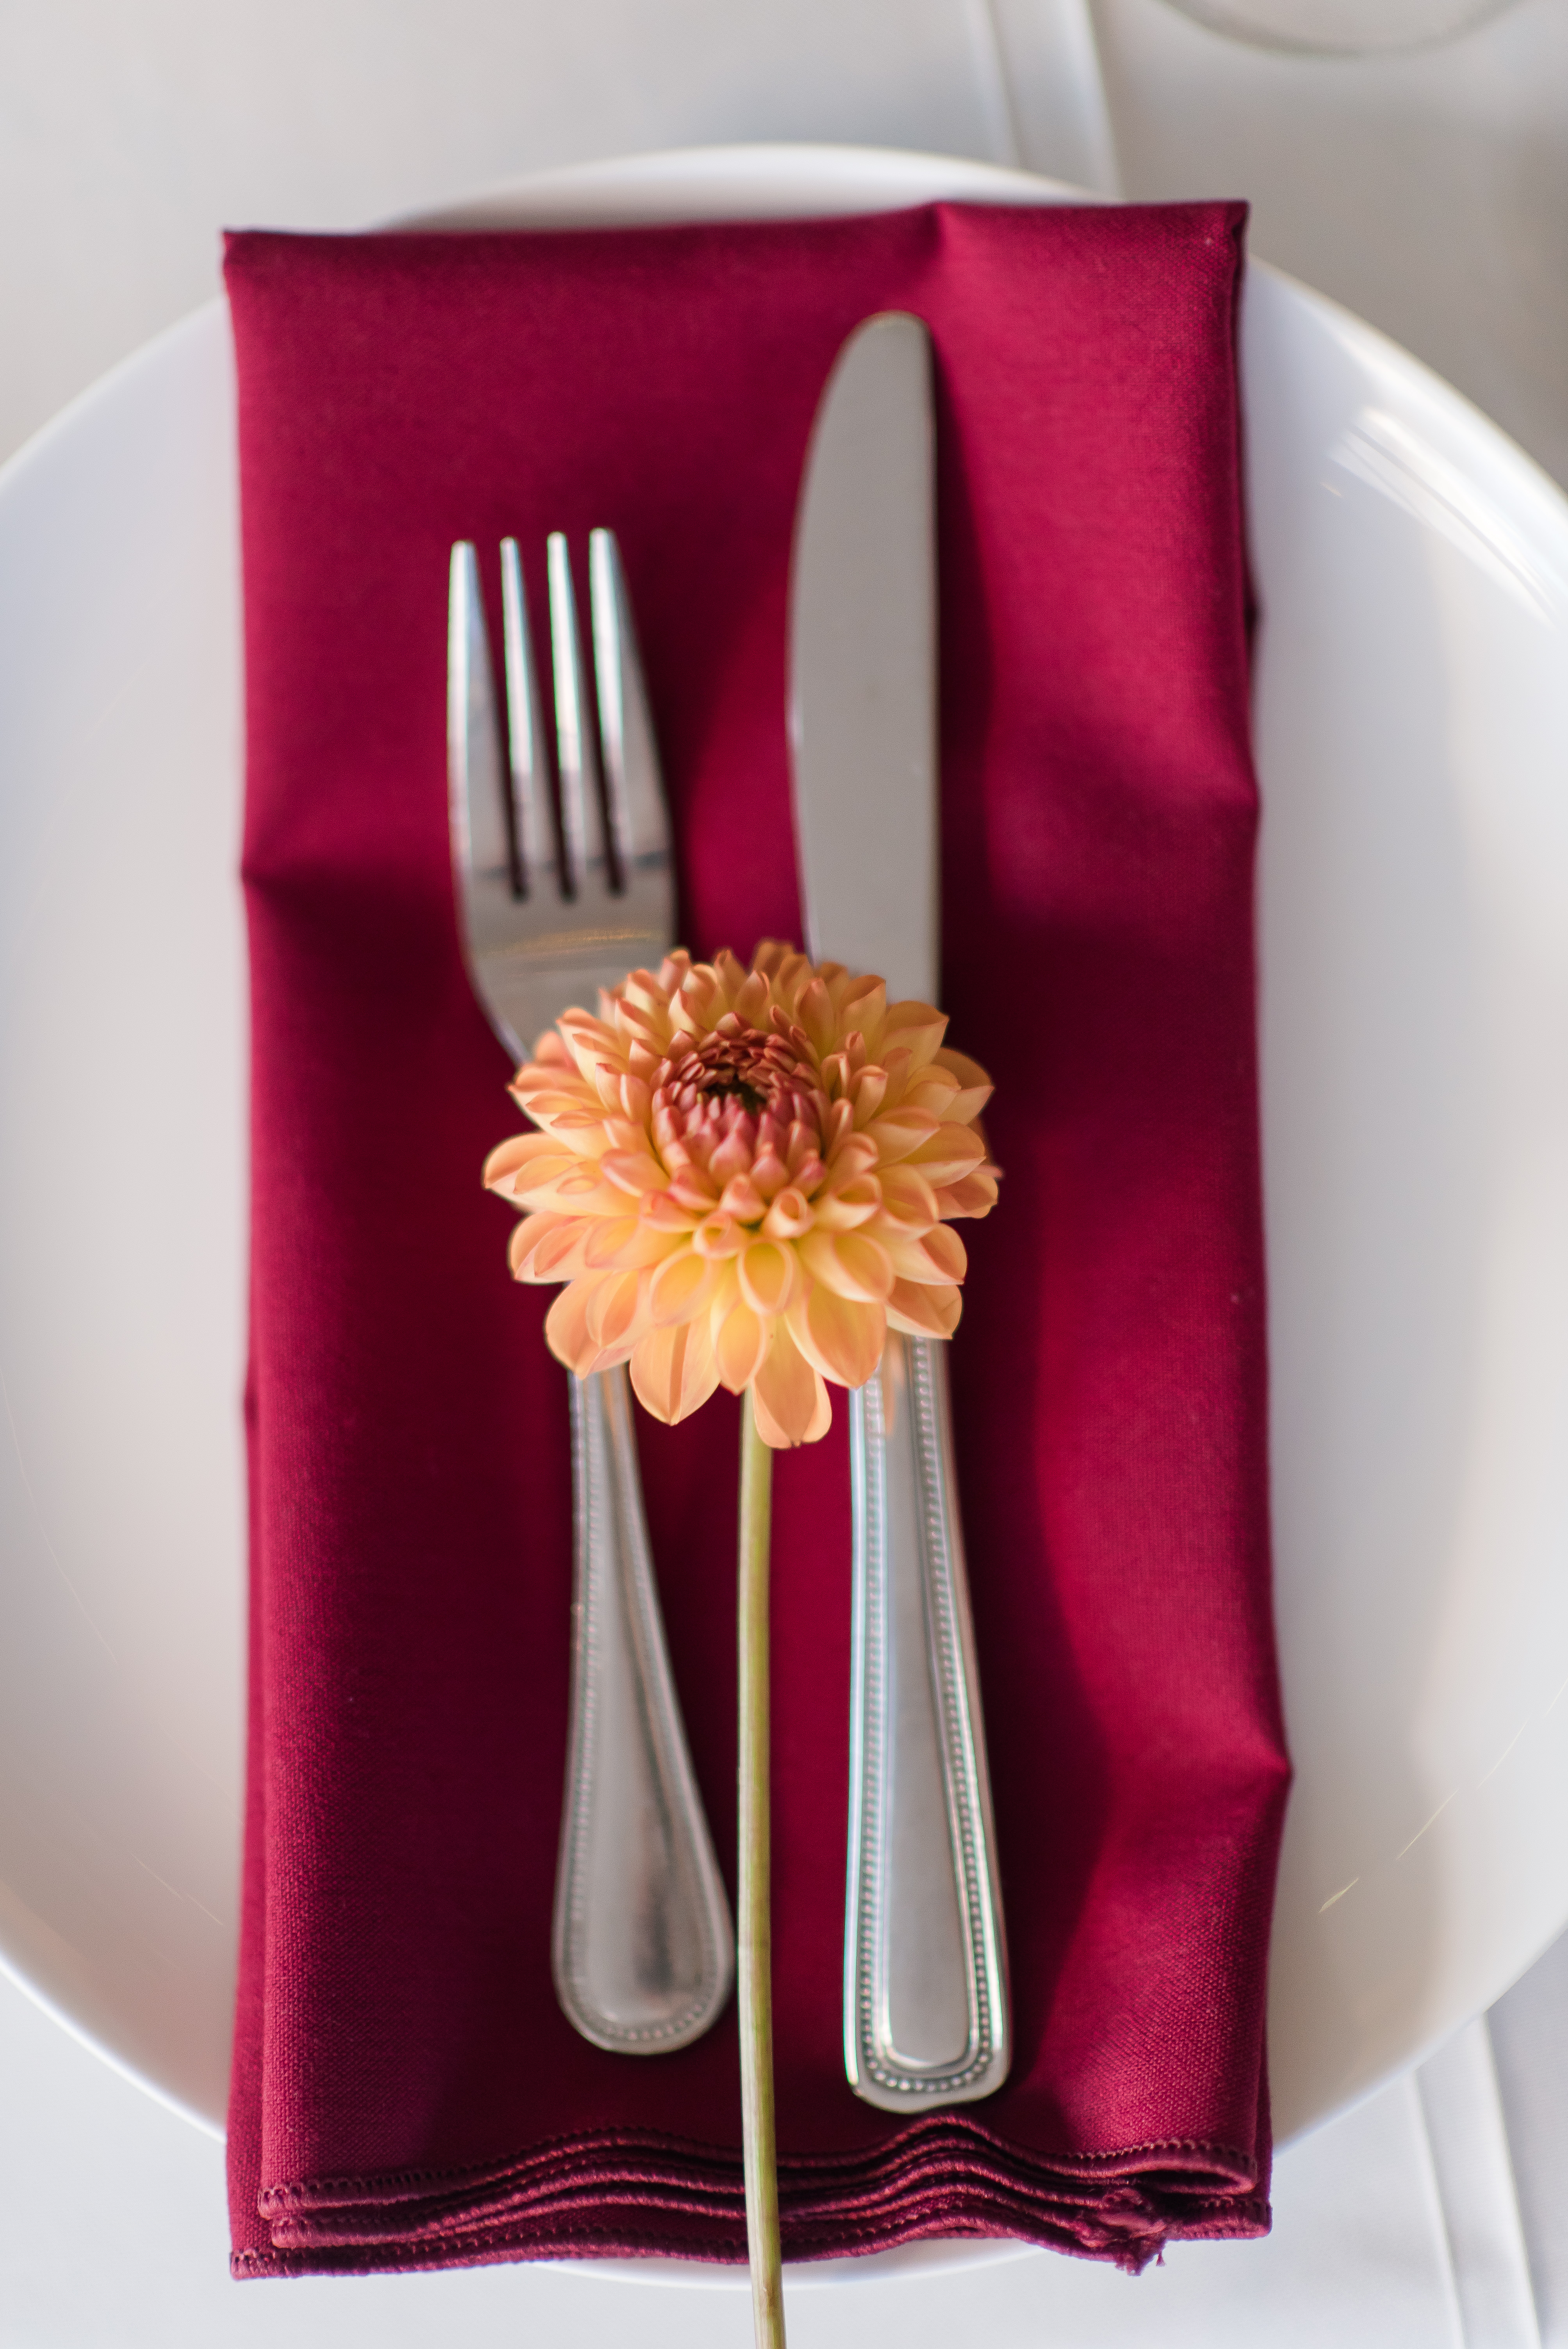 fork and knife on red napkin with flower